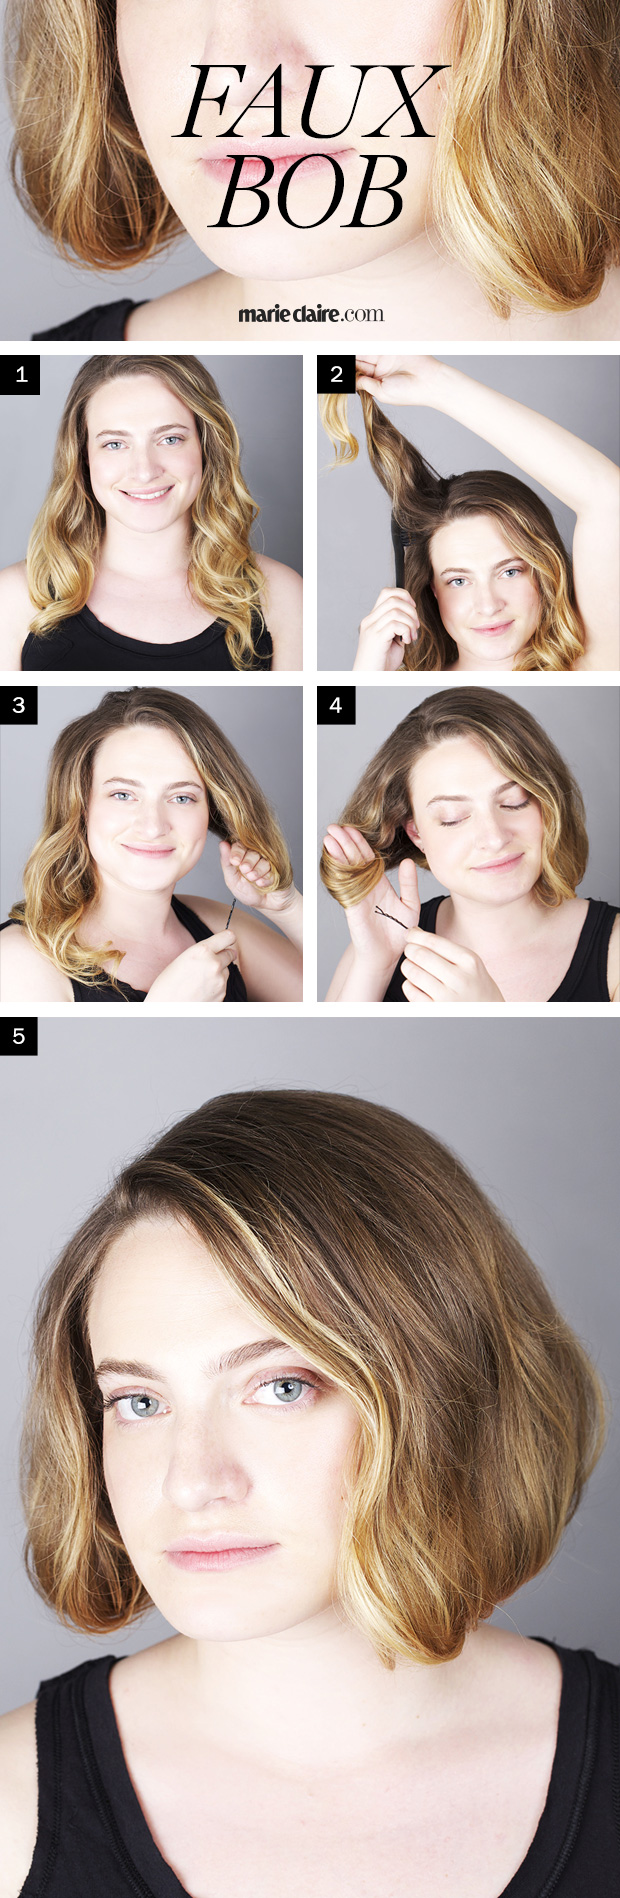 _mcx-faux-bob-how-to